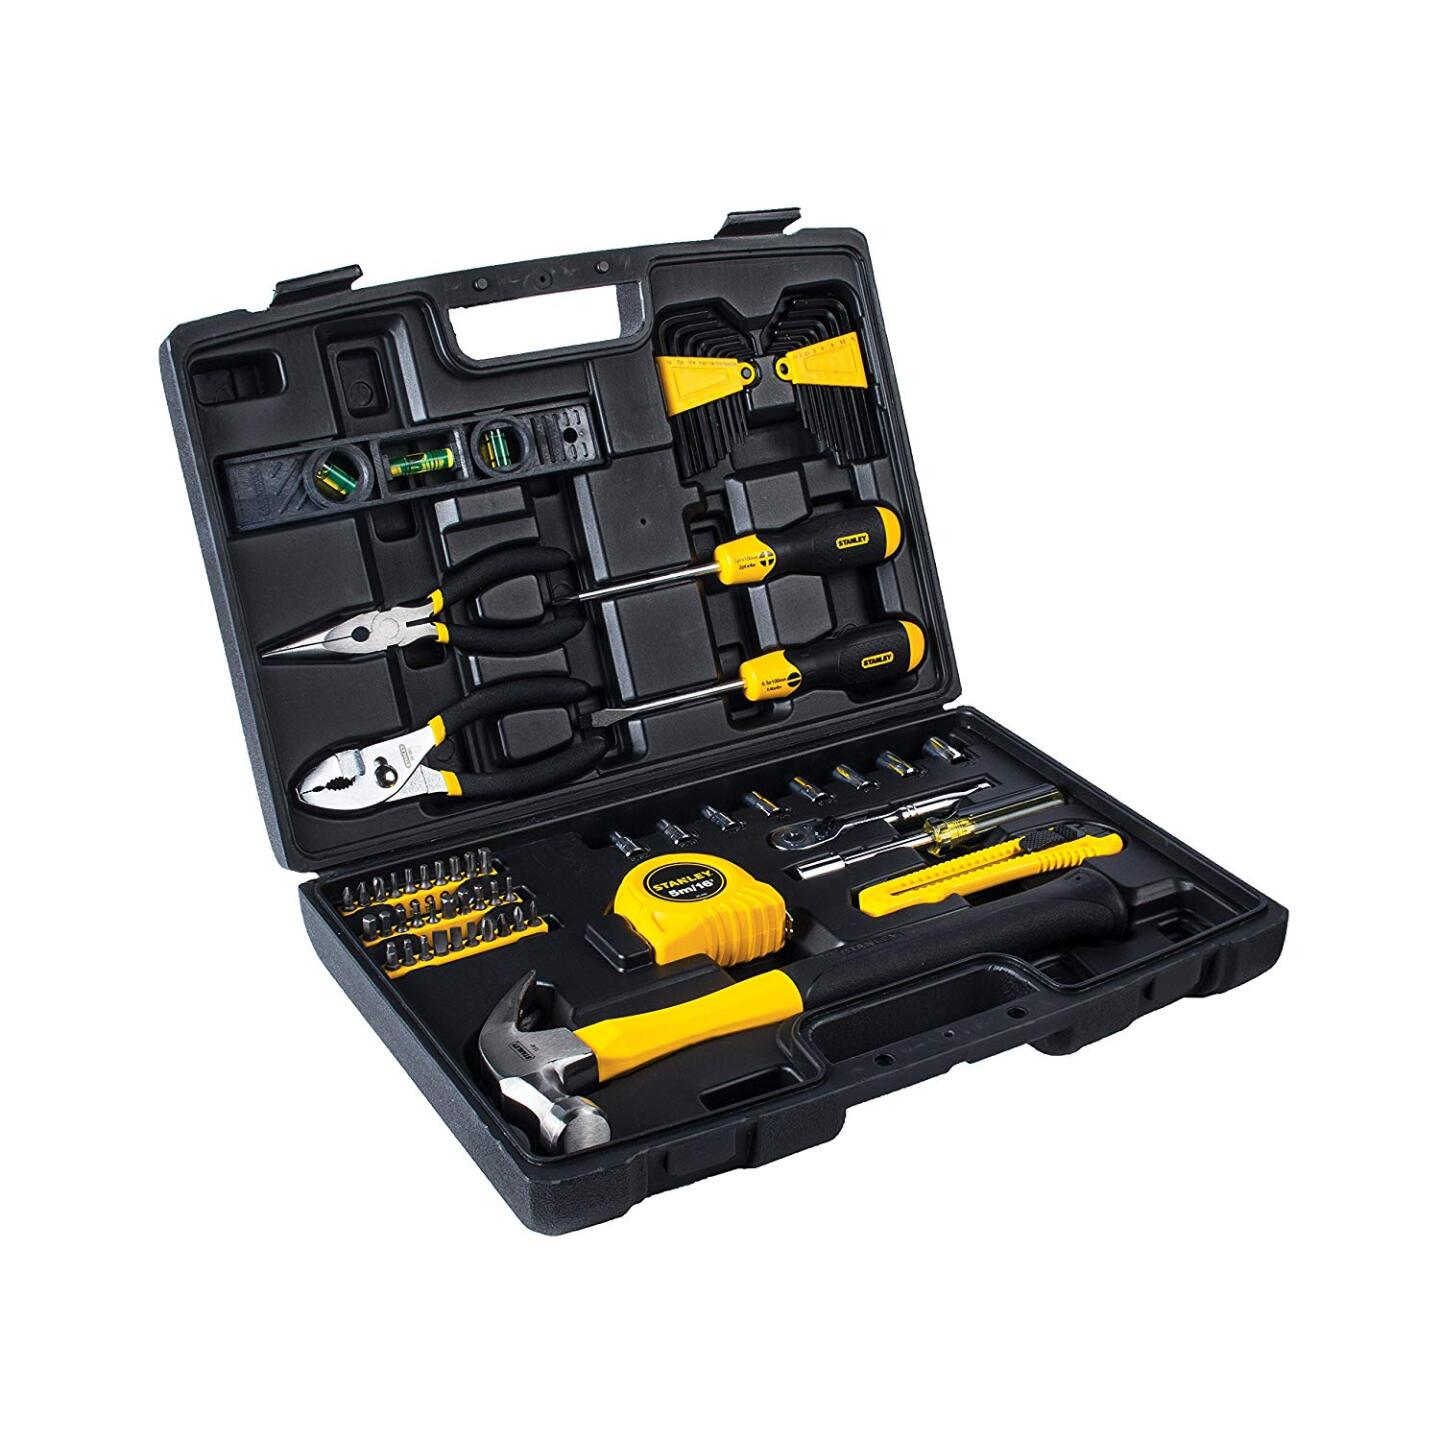 Stanley 94-248 65-Piece Homeowner's Tool Kit.jpg